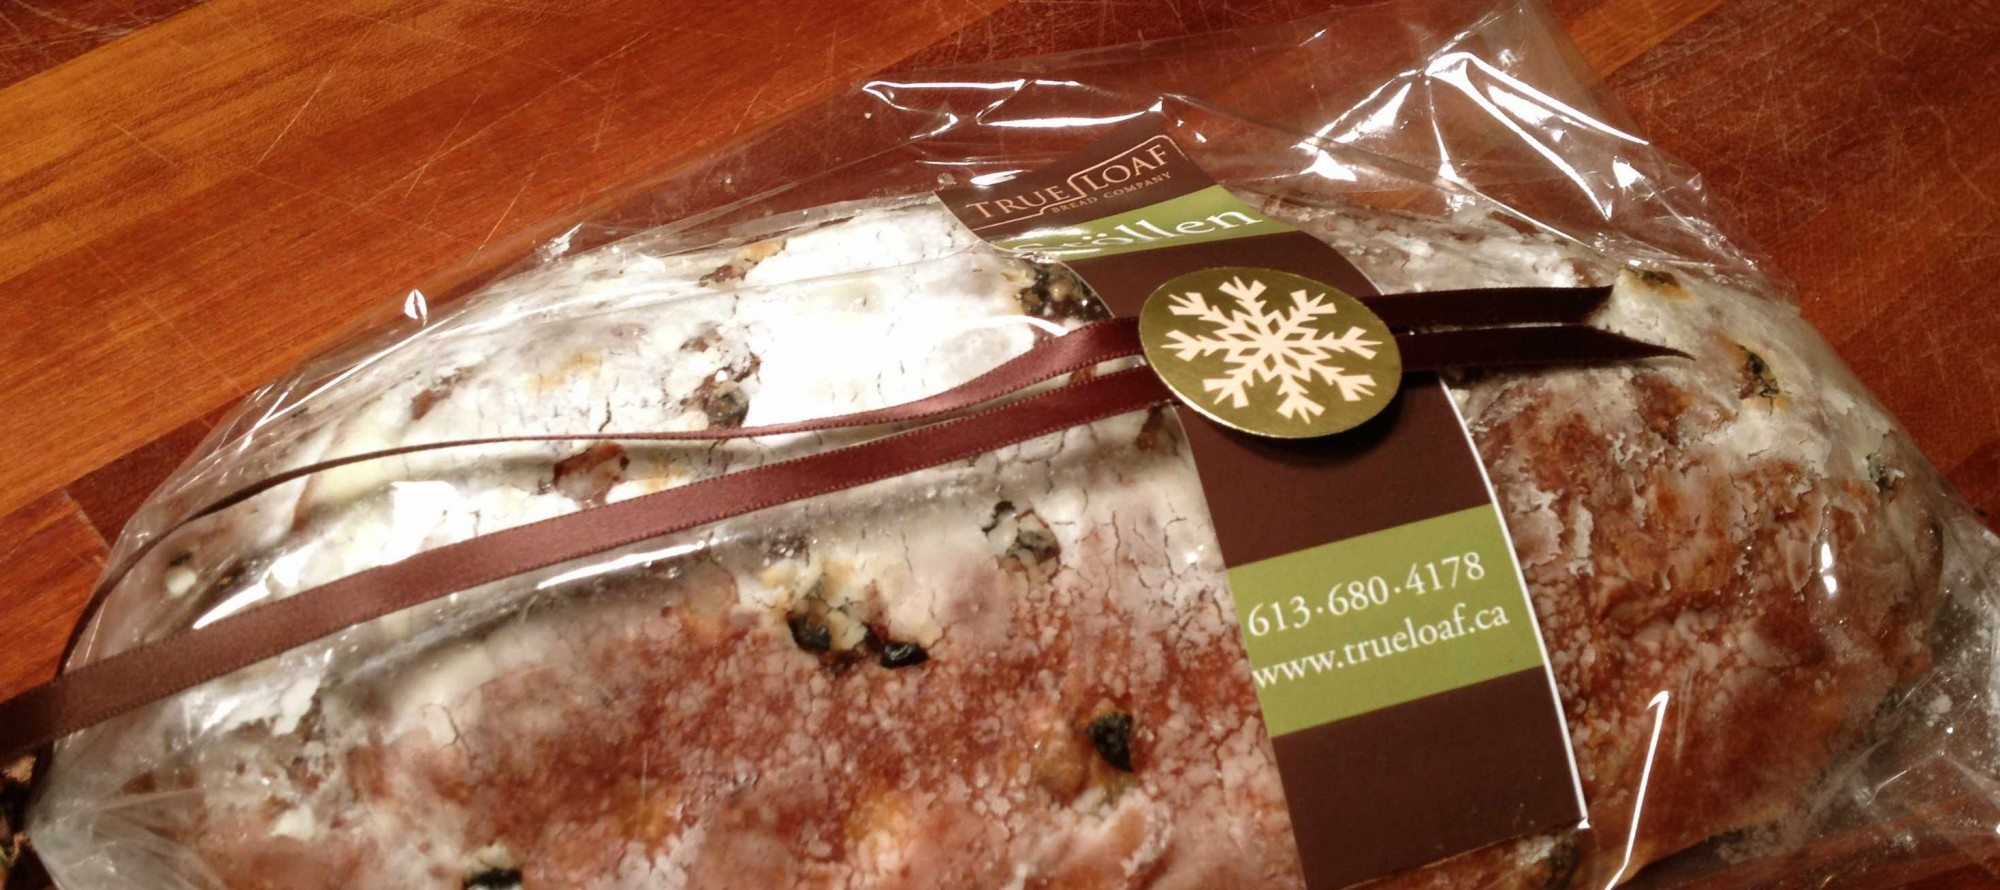 ANNE'S PICKS: Just in time for the holidays, Anne DesBrisay finds a worthy Stollen at True Loaf